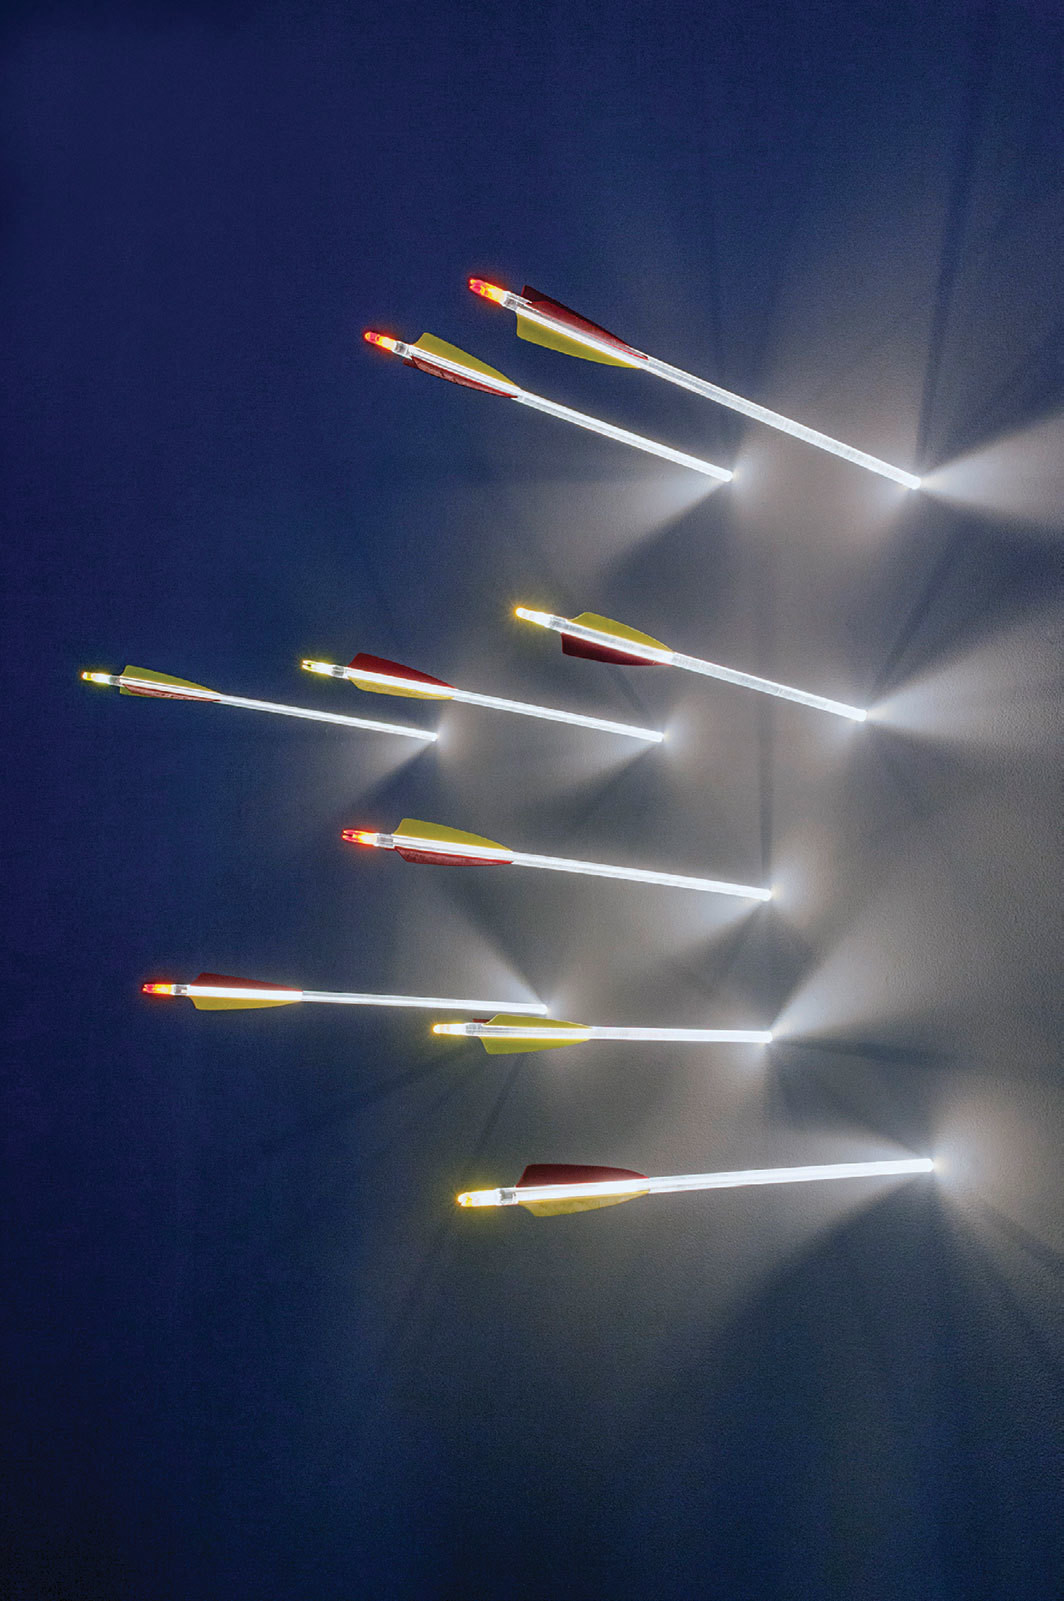 Hans Kotter, Arrows, 2014, Plexiglas, LED lights, feathers, dimensions variable.